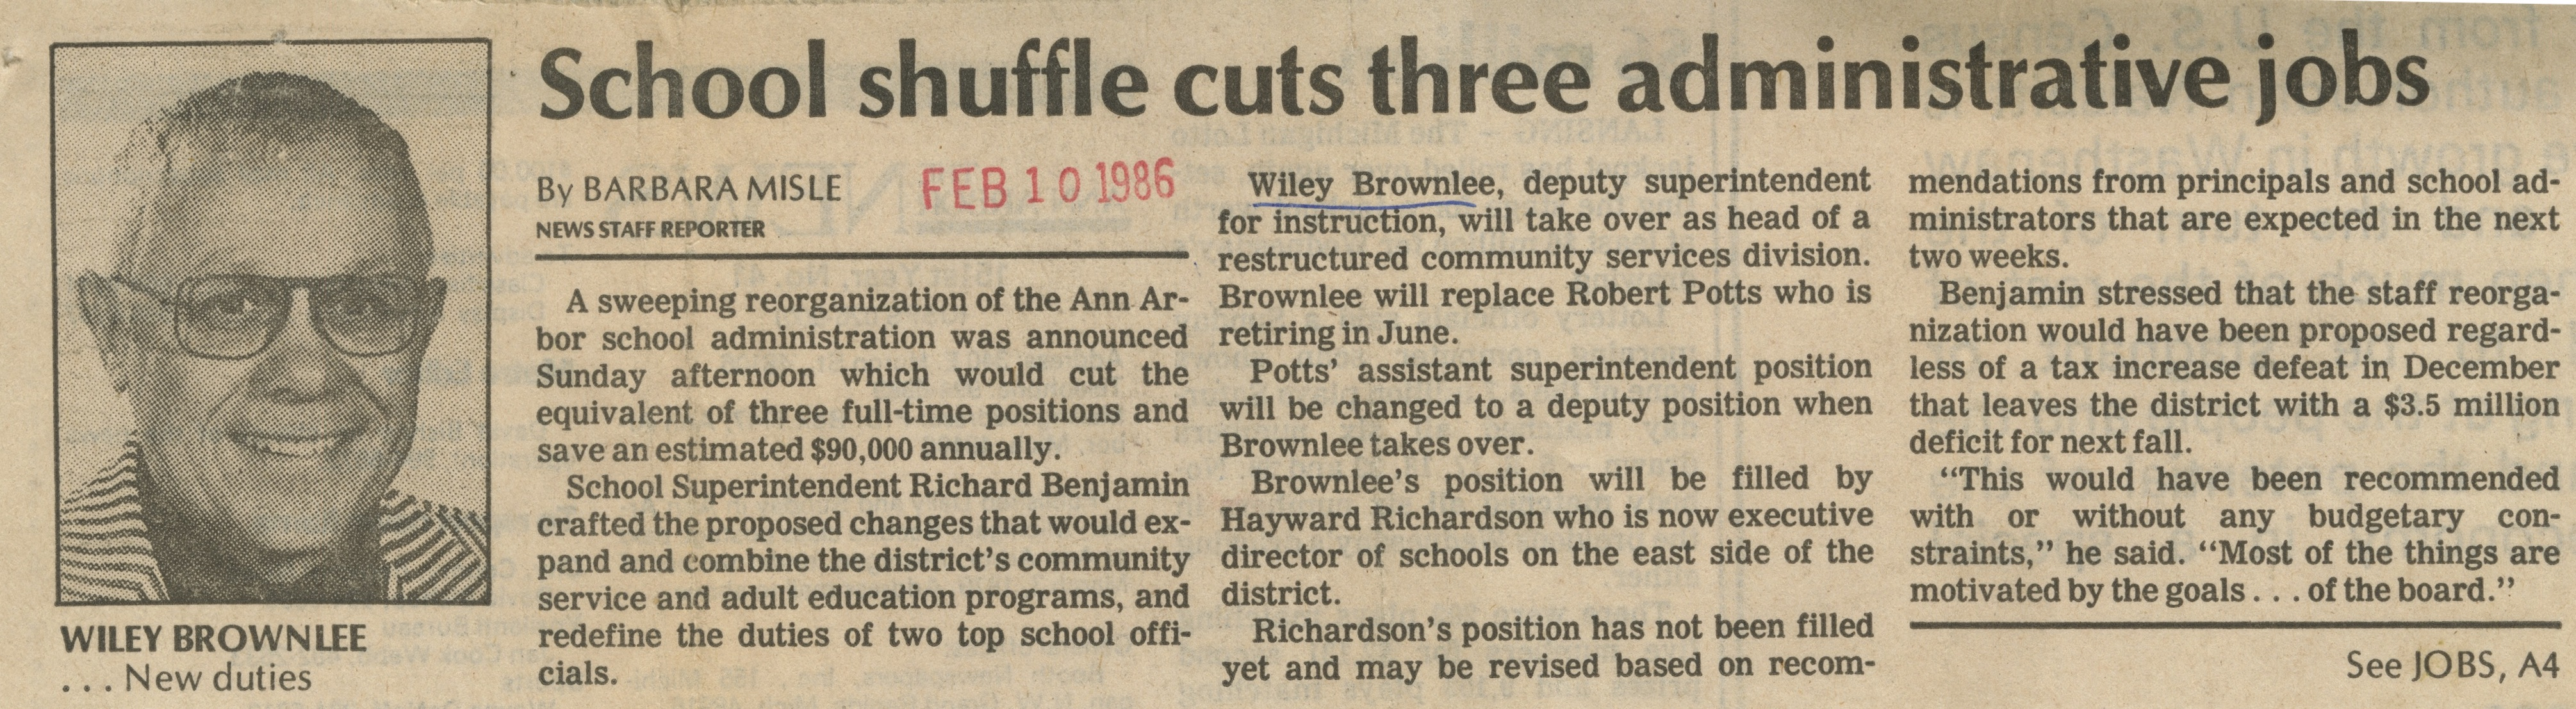 School shuffle cuts three administrative jobs image